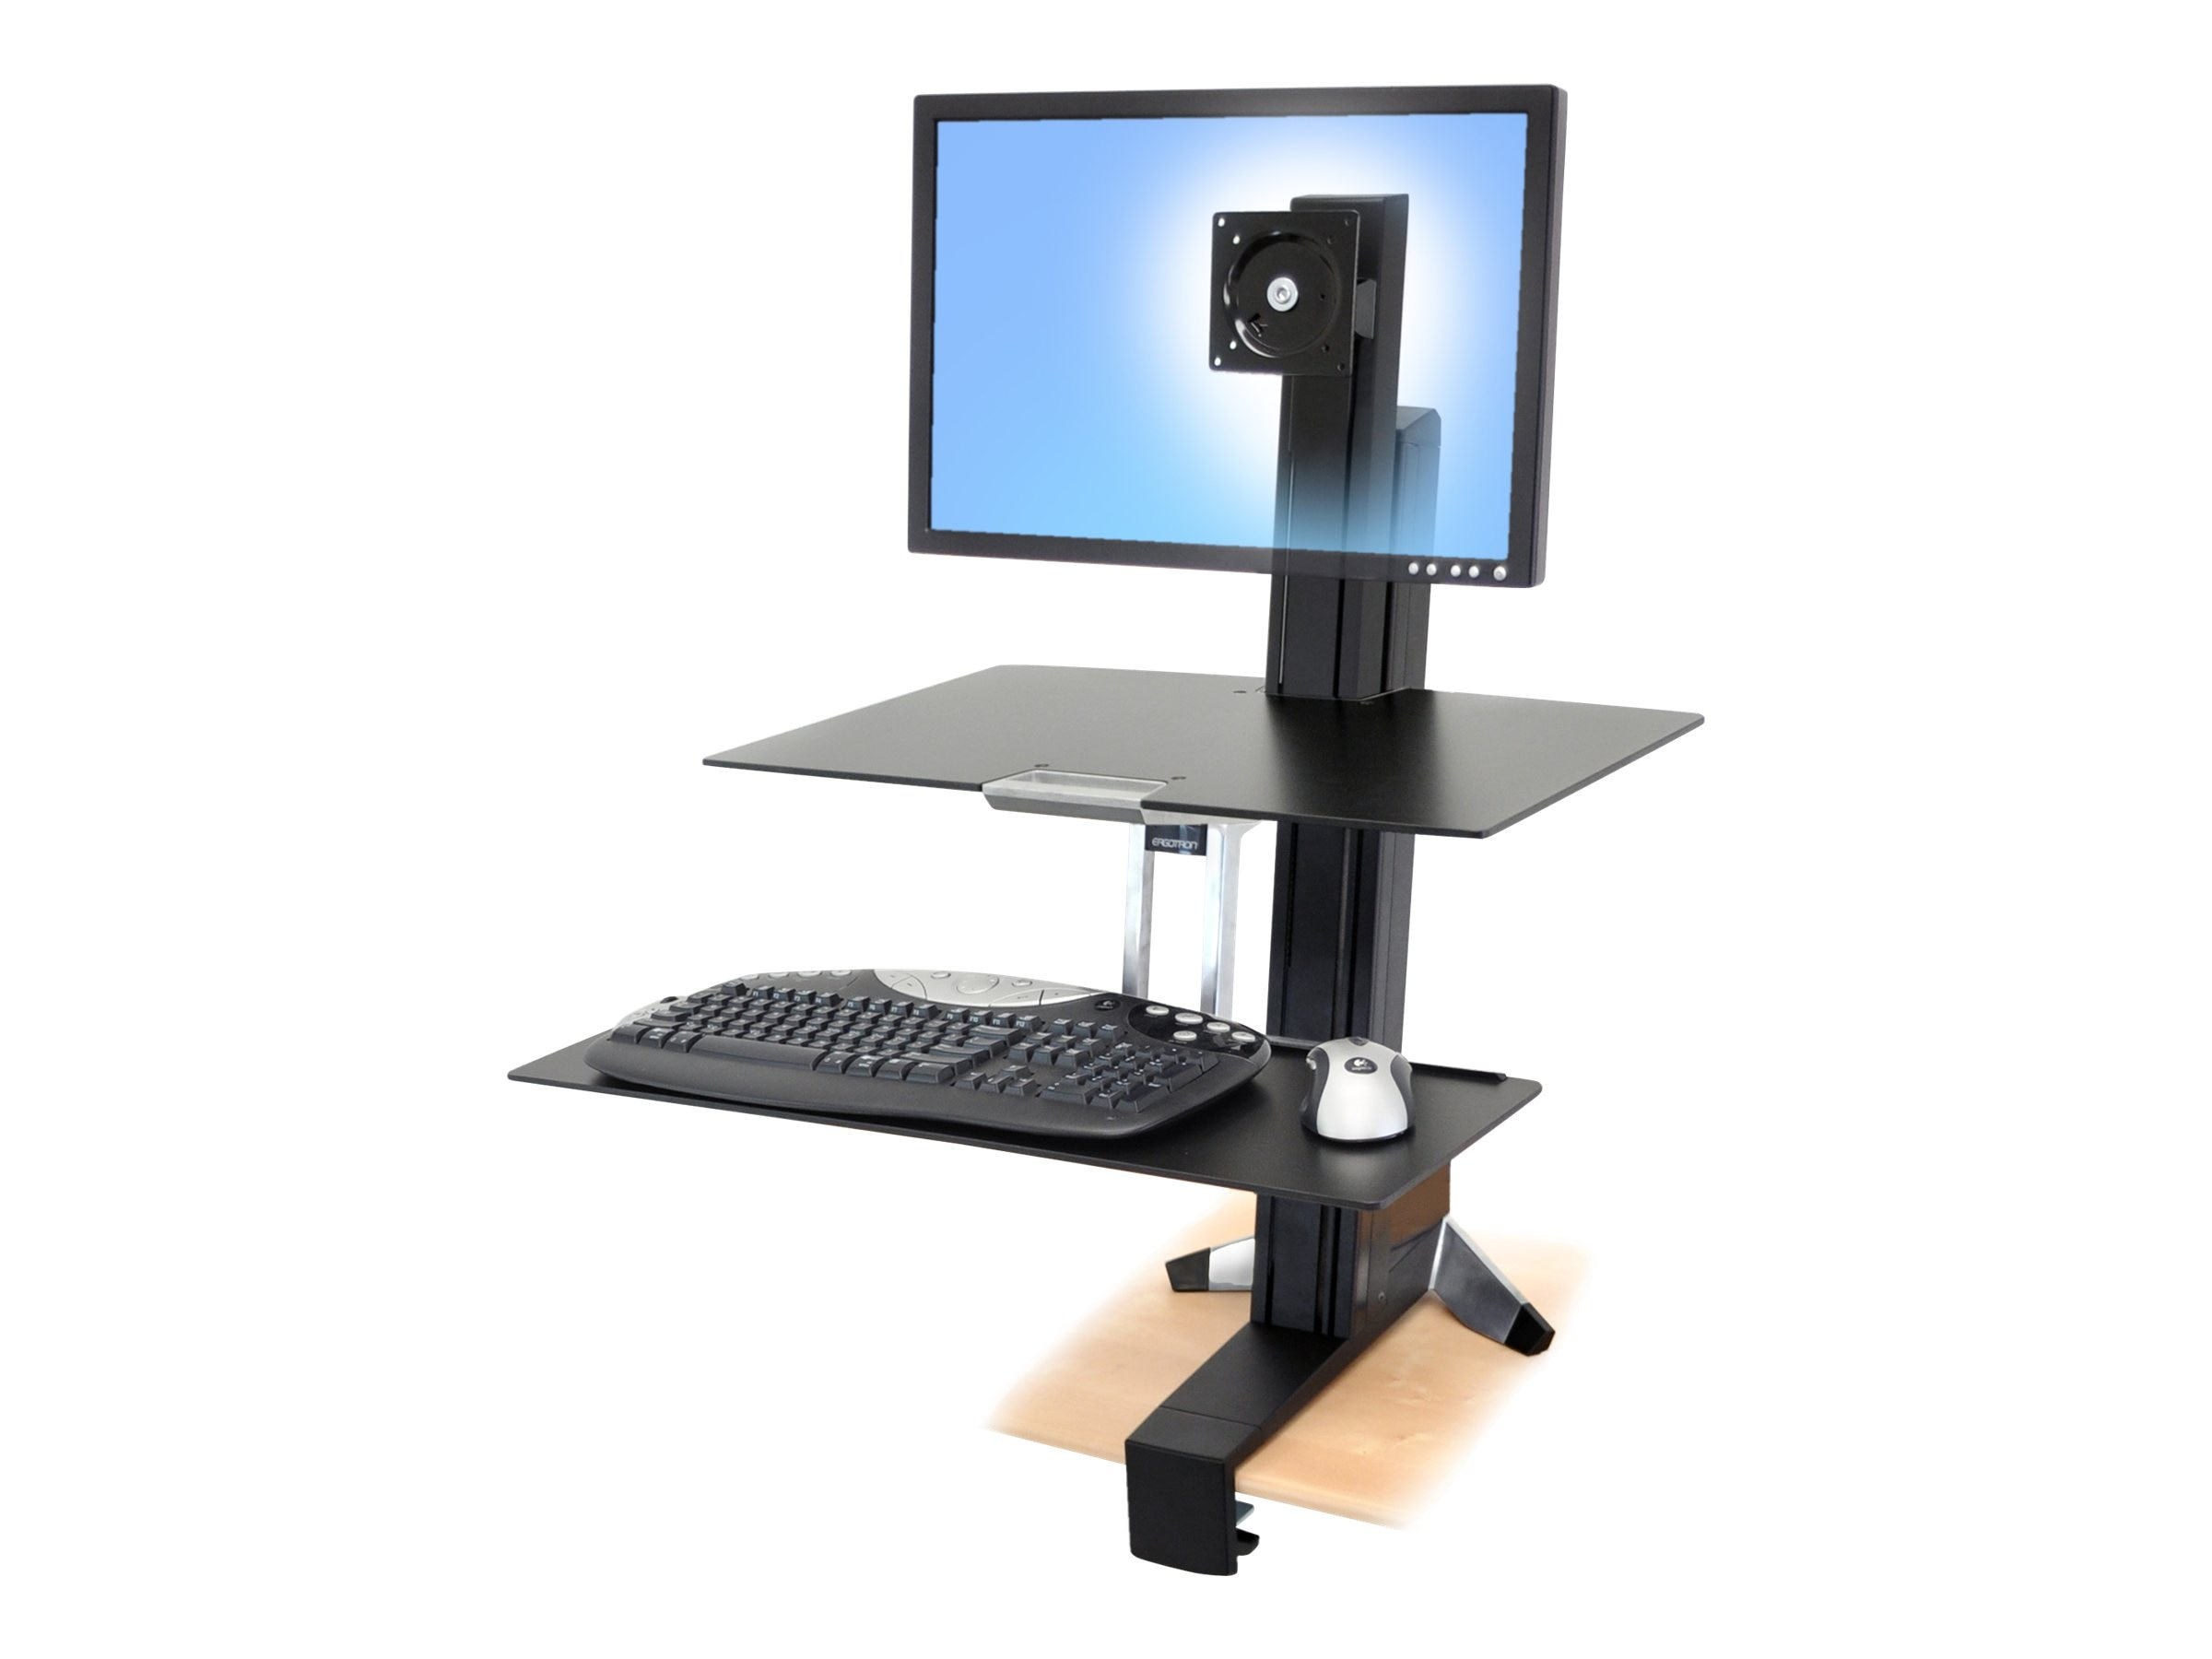 Ergotron WorkFit-S, Single HD with Worksurface+, 33-351-200, 13673669, Ergonomic Products